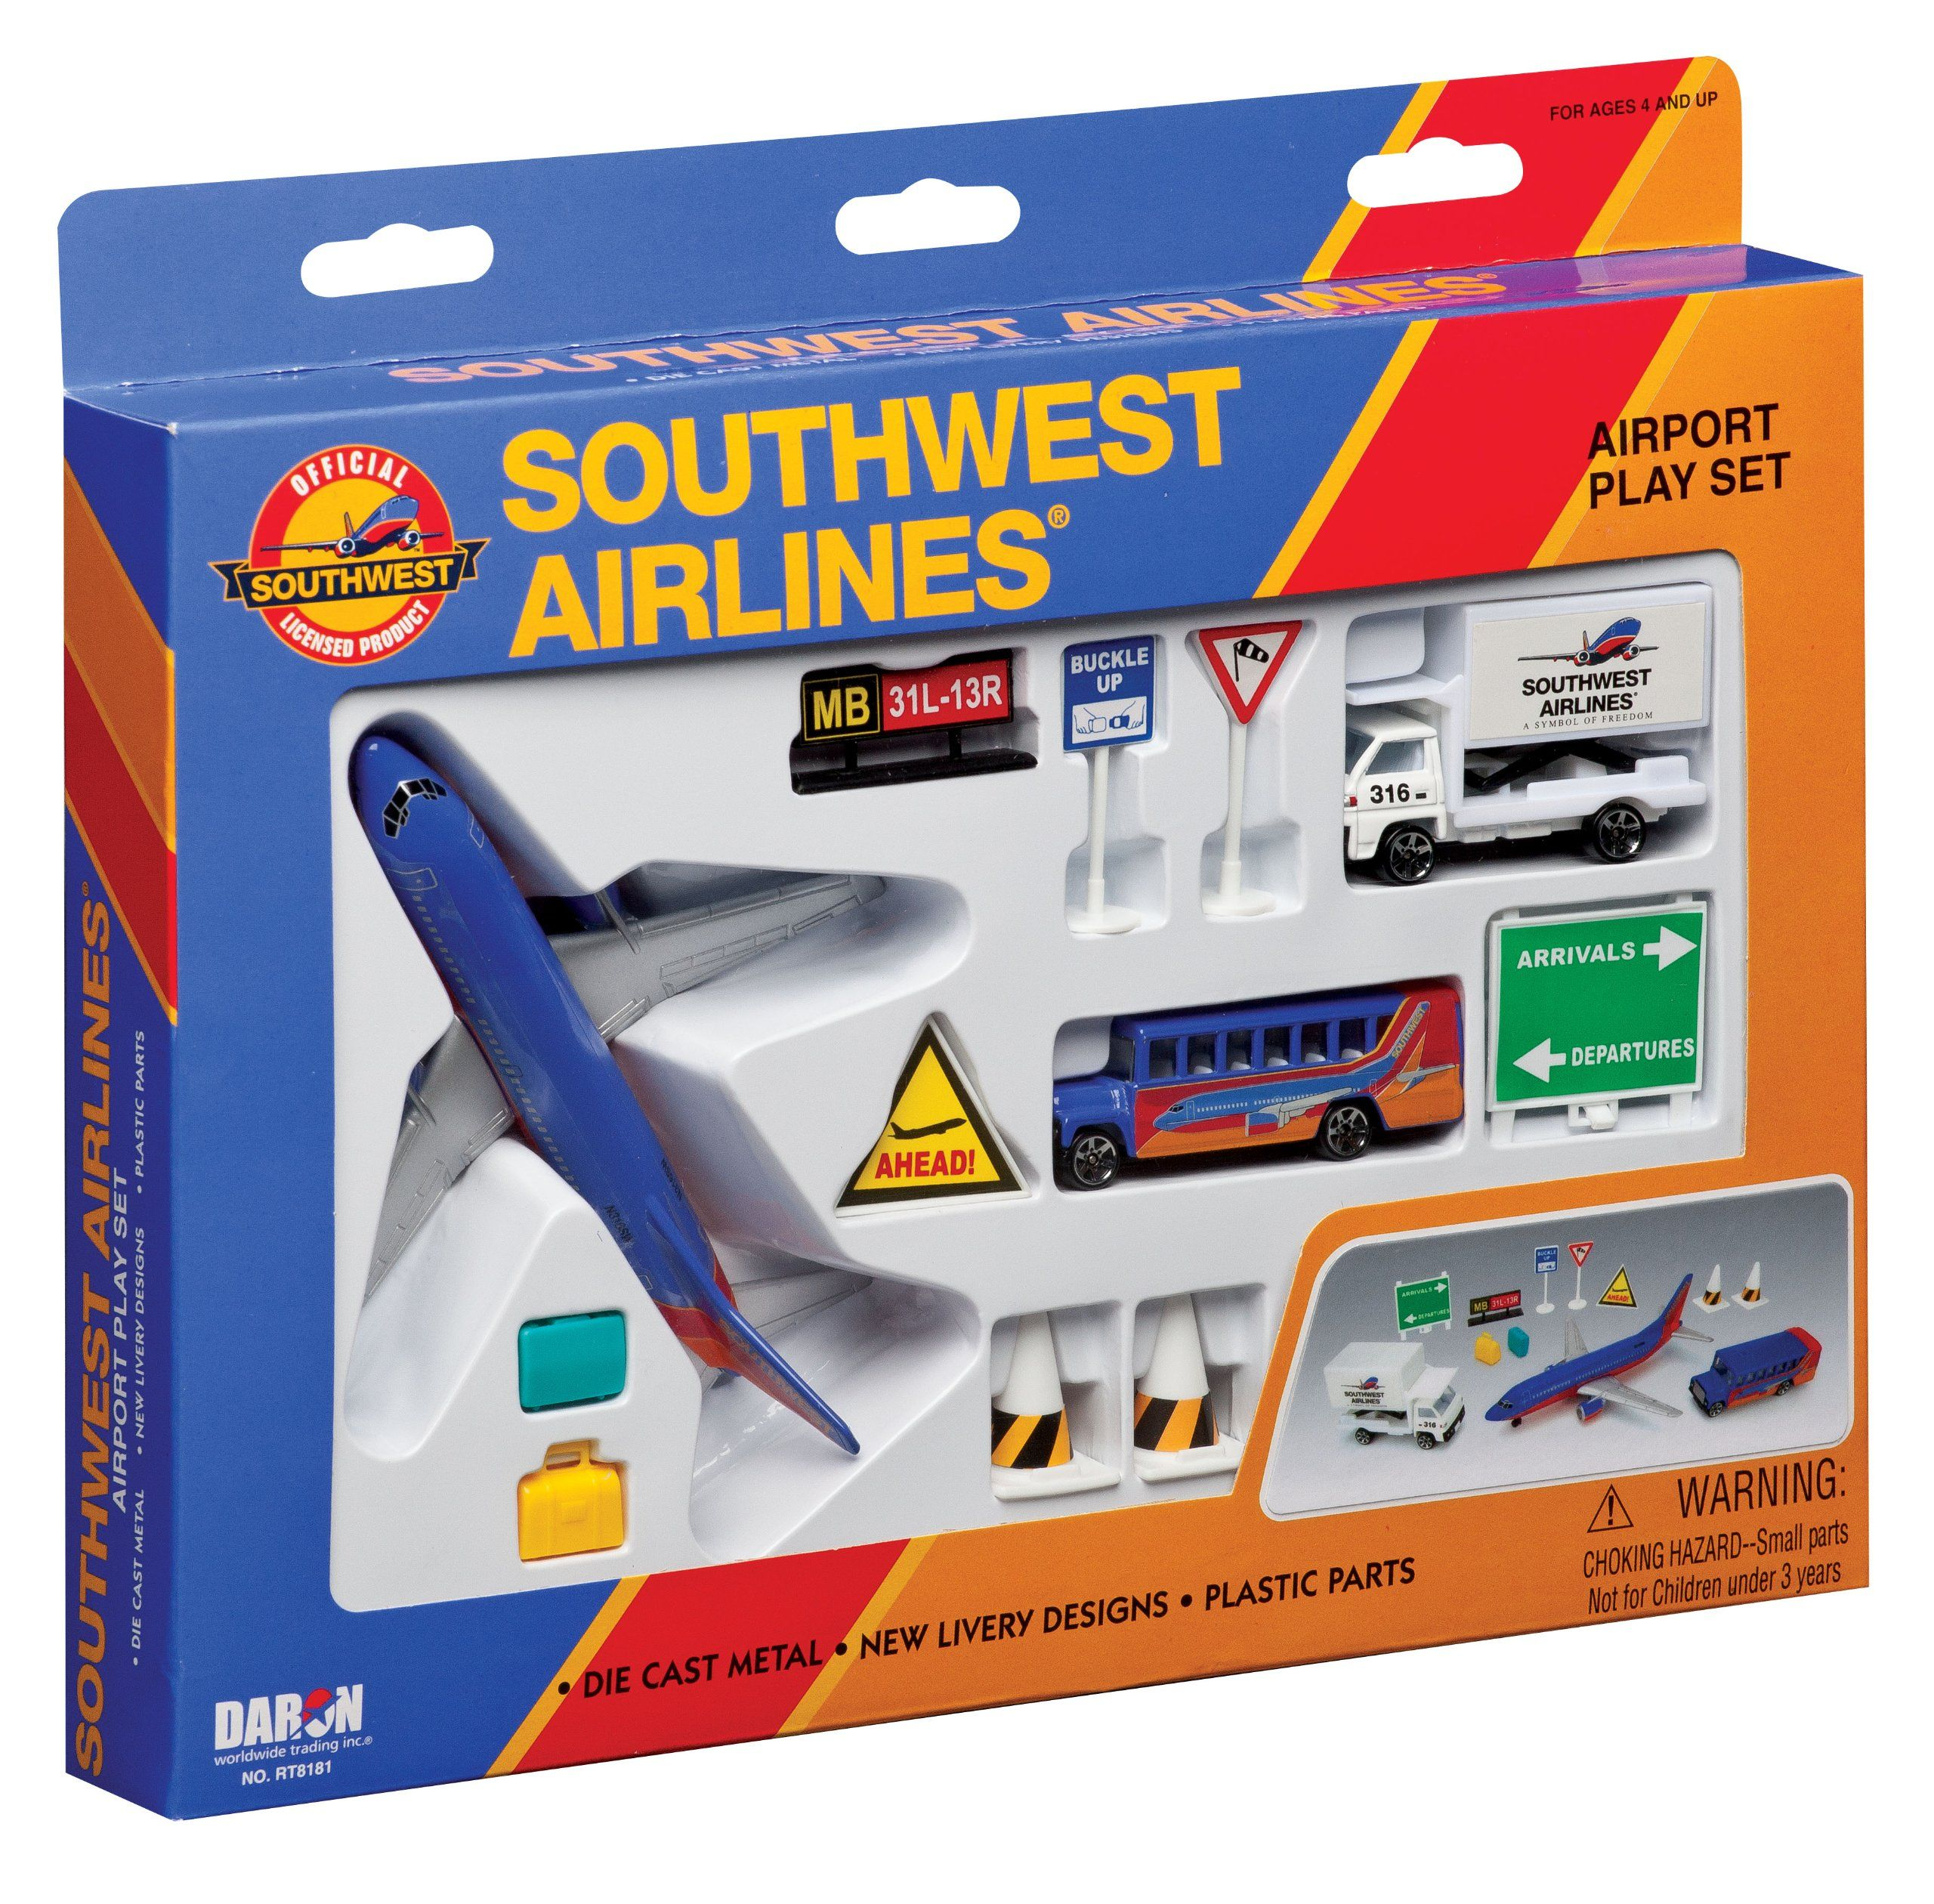 Daron southwest airlines airport playset toys